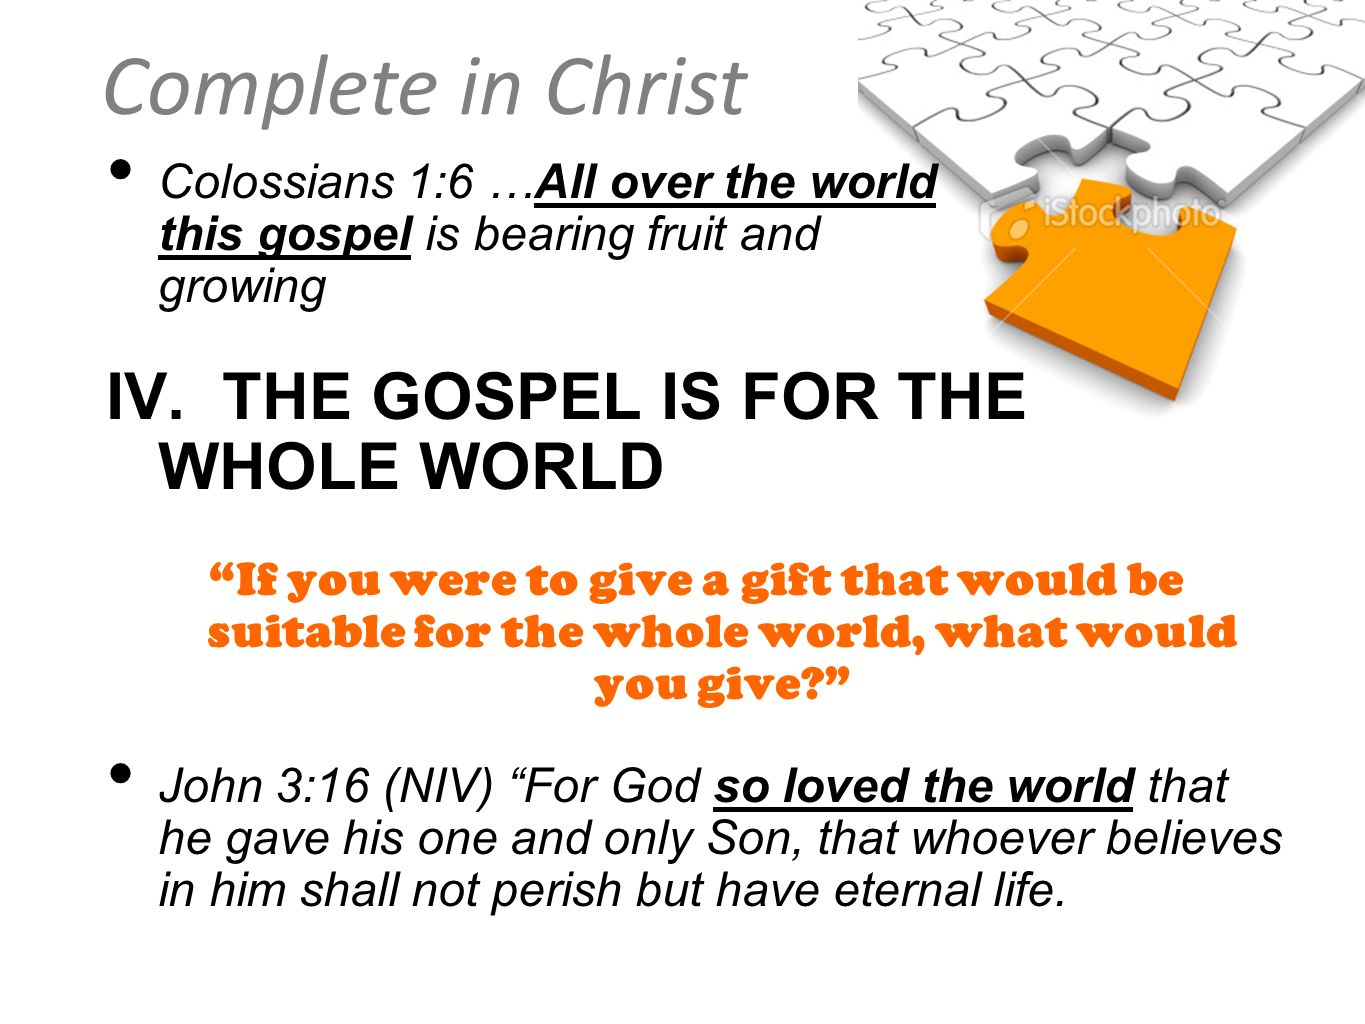 IV. THE GOSPEL IS FOR THE WHOLE WORLD